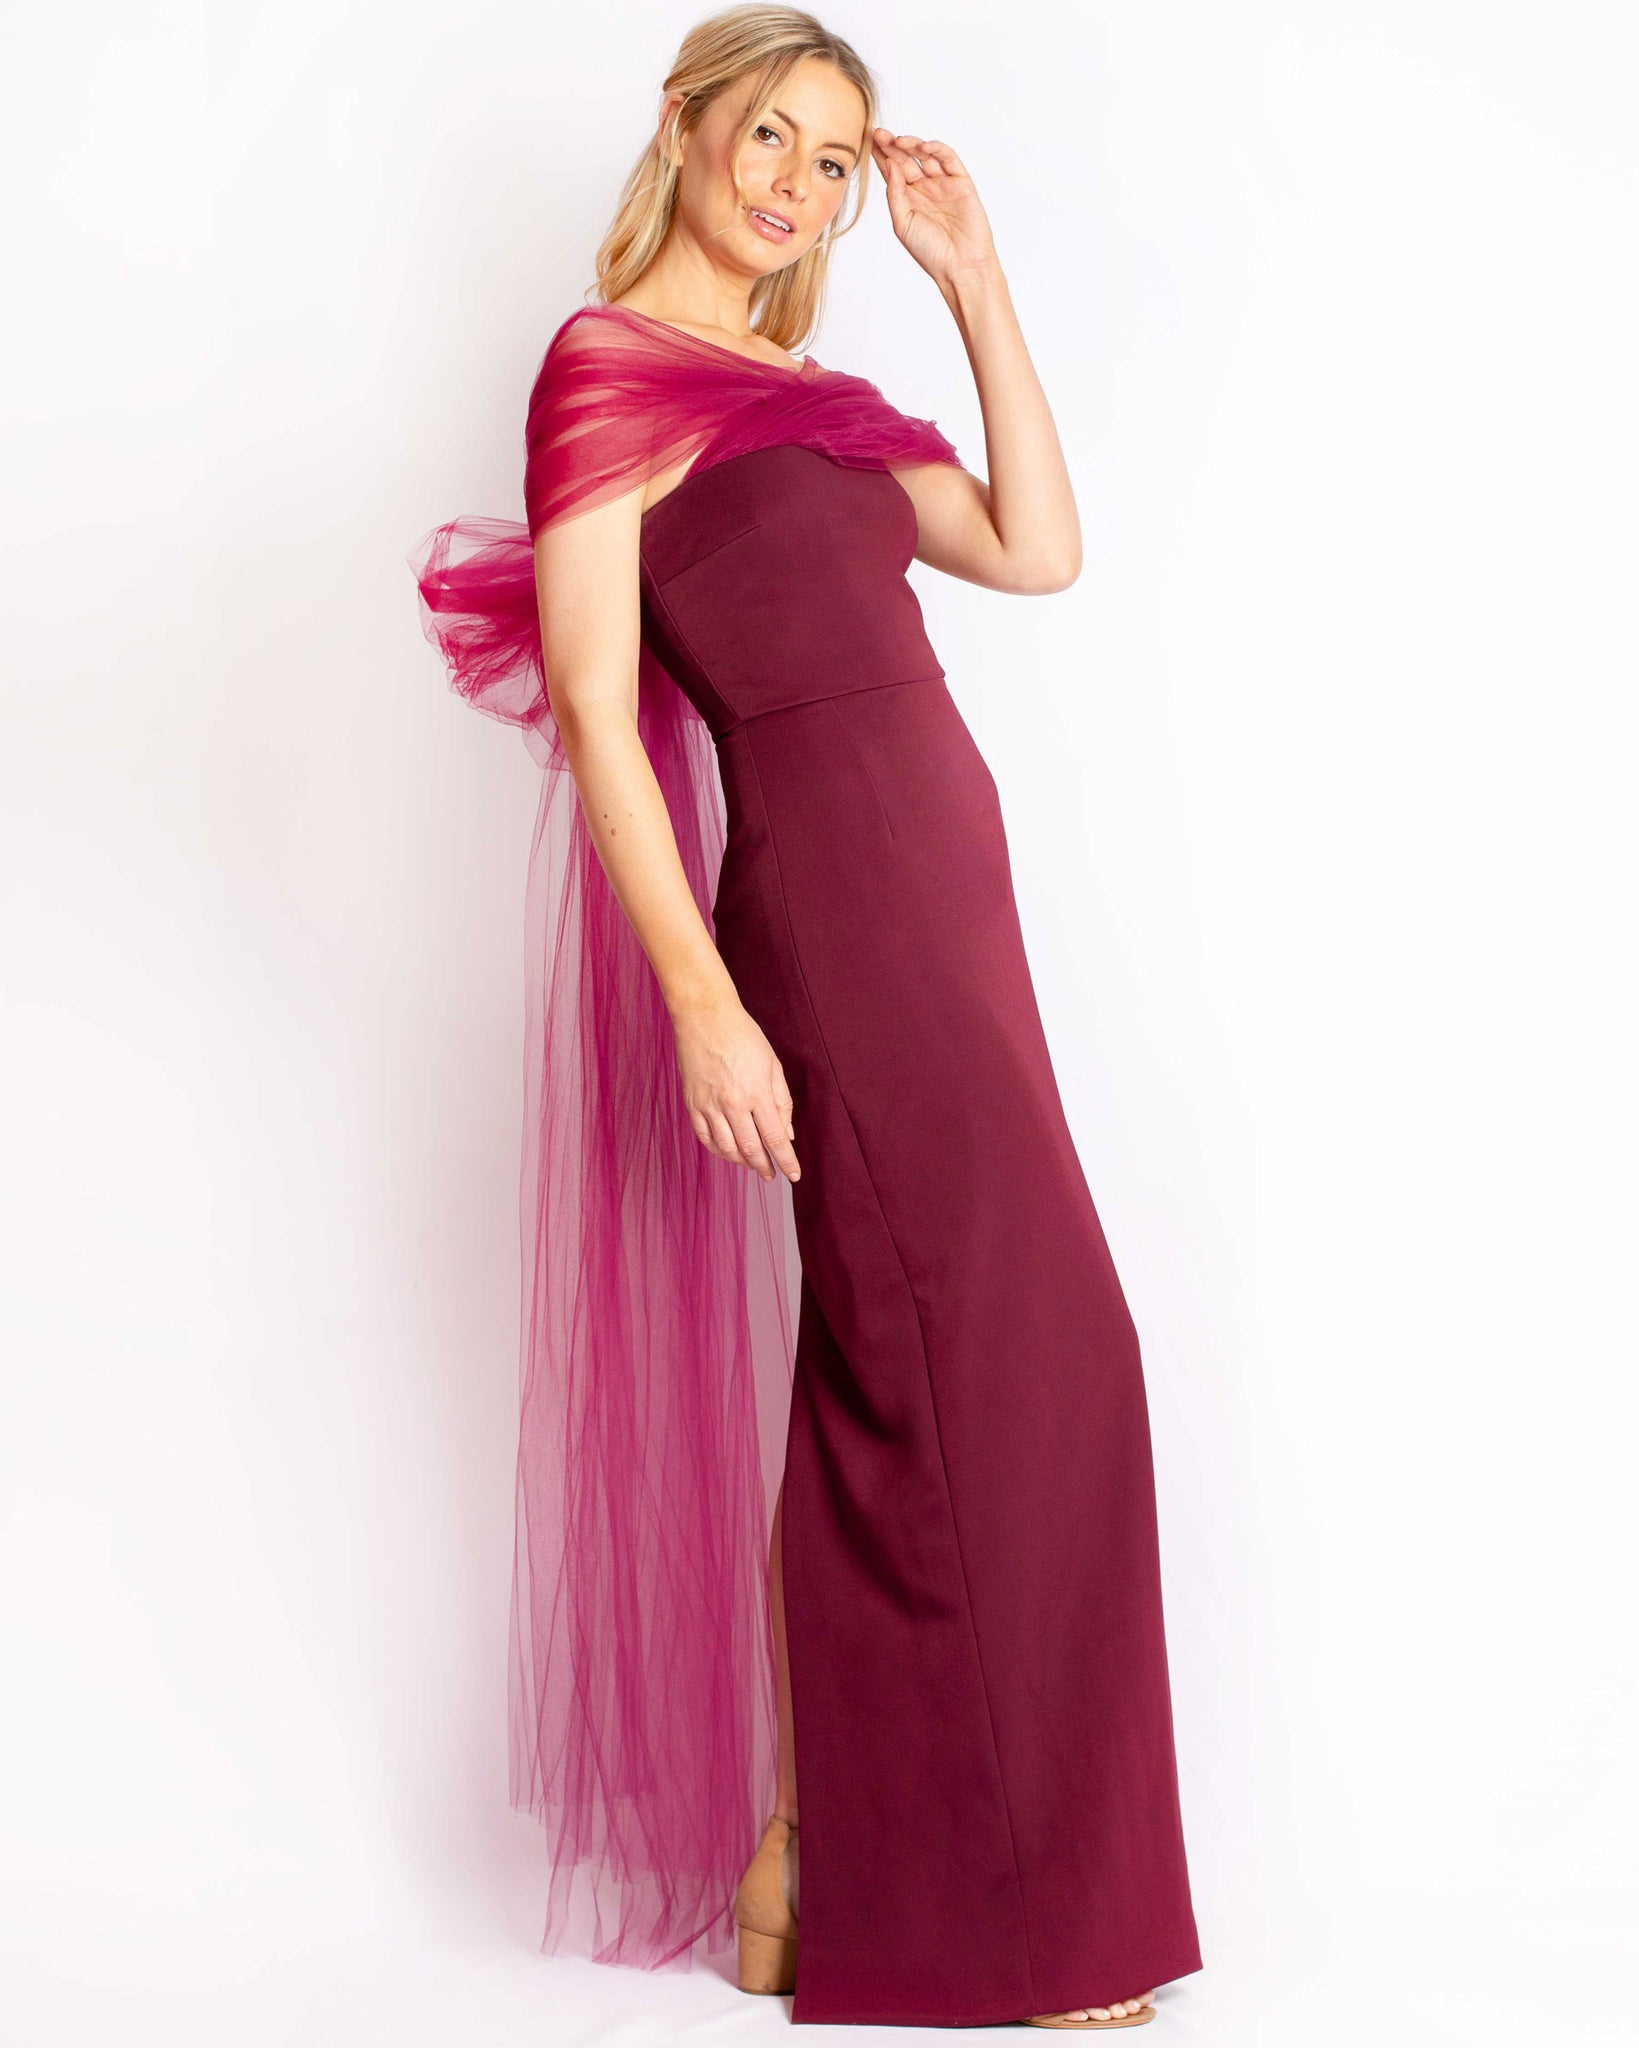 The Elaine Gown